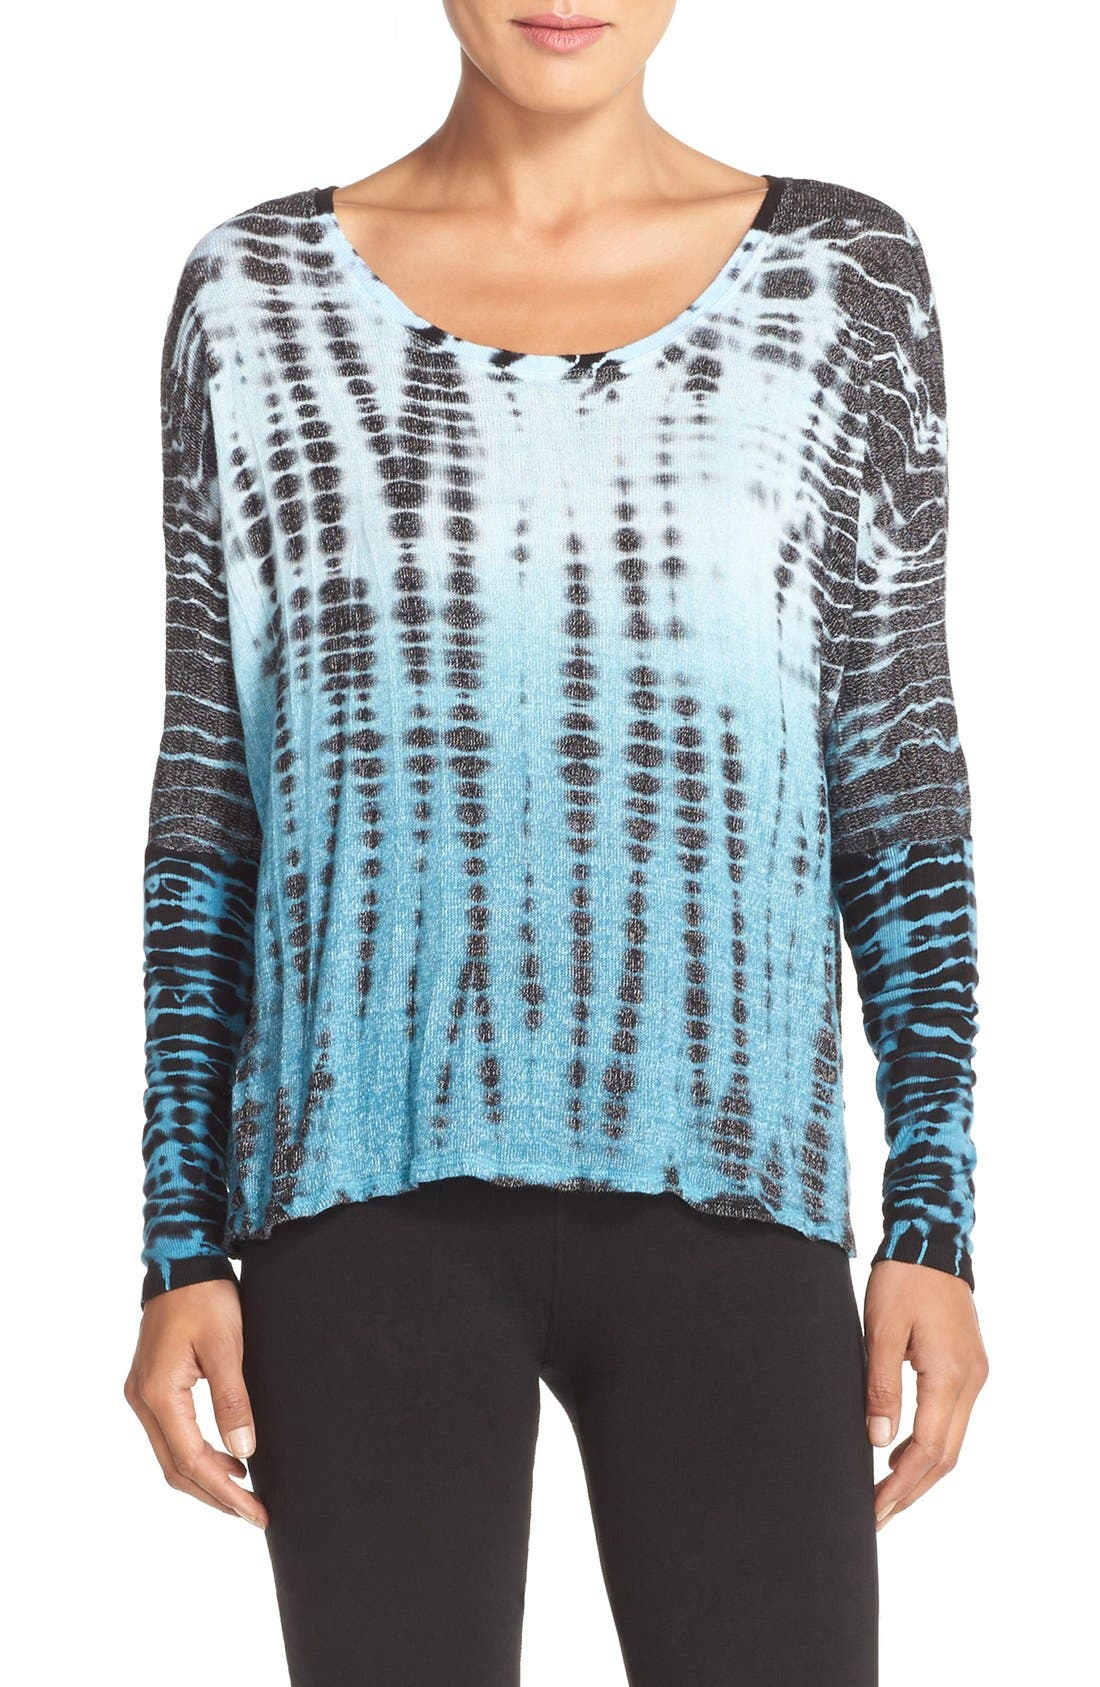 Alternate Image 1 Selected - Hard Tail Long Sleeve Knit Top